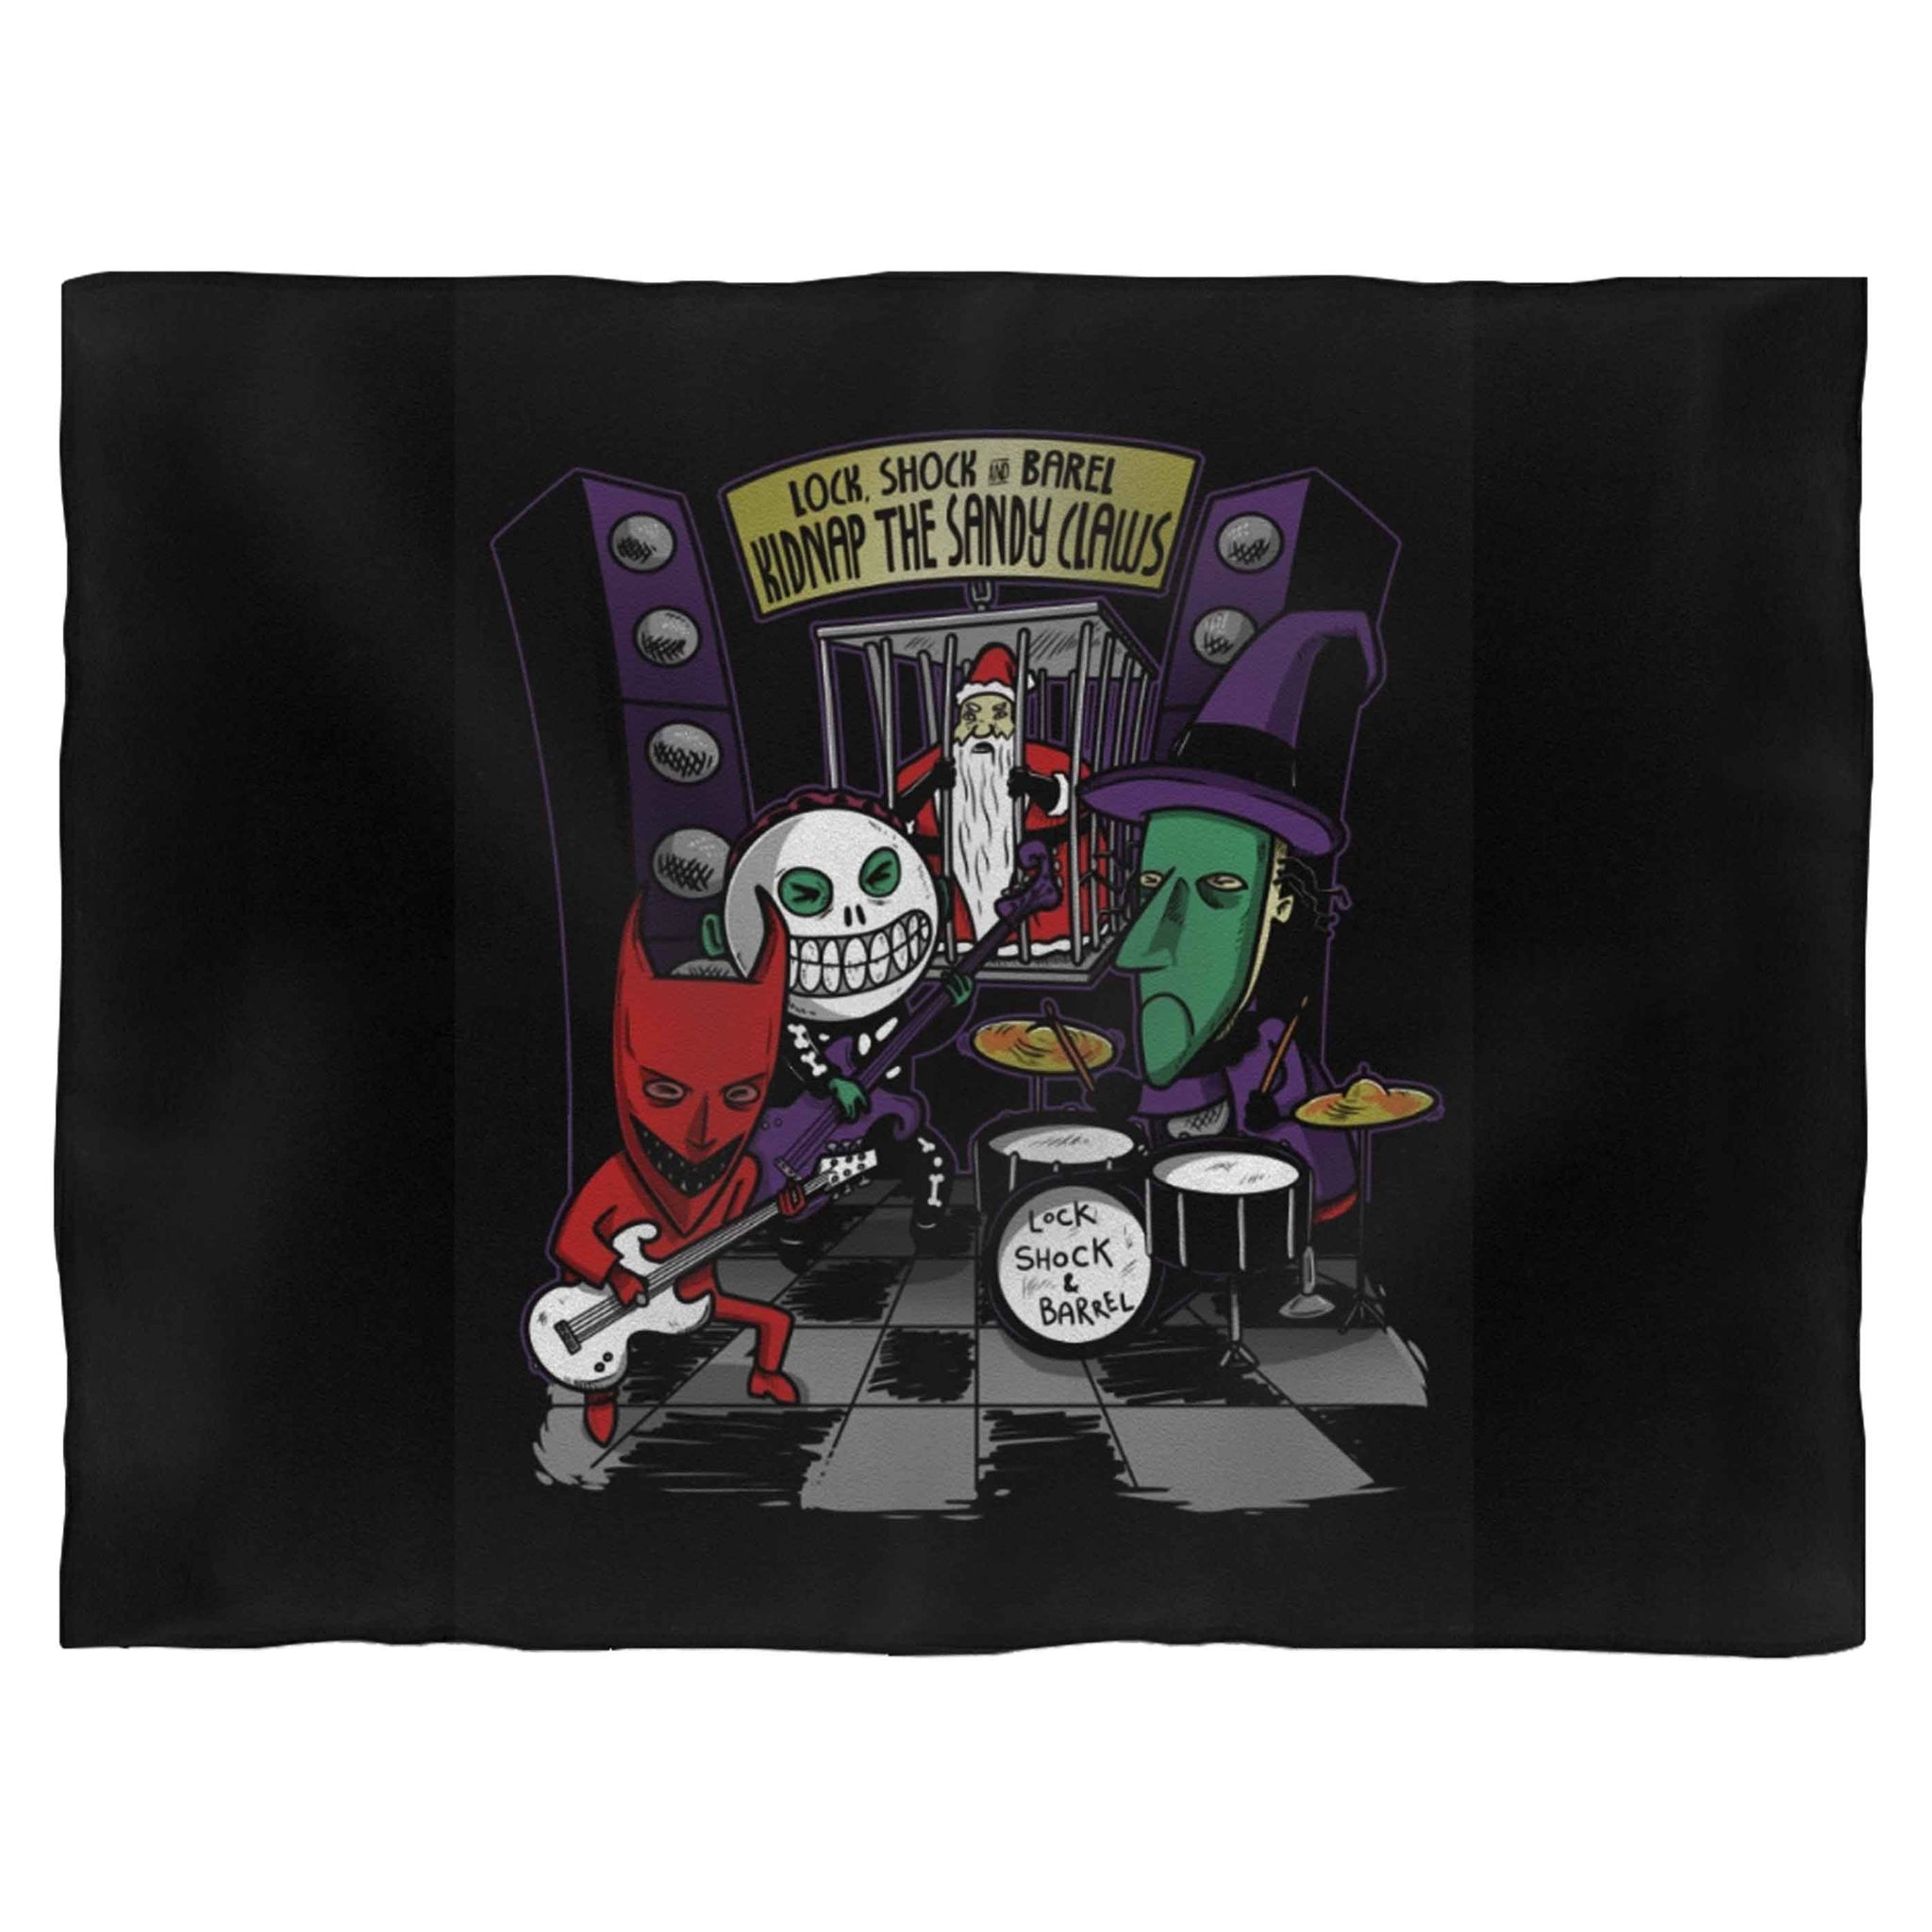 Party Kidnap The Sandy Claws Fleece Blanket